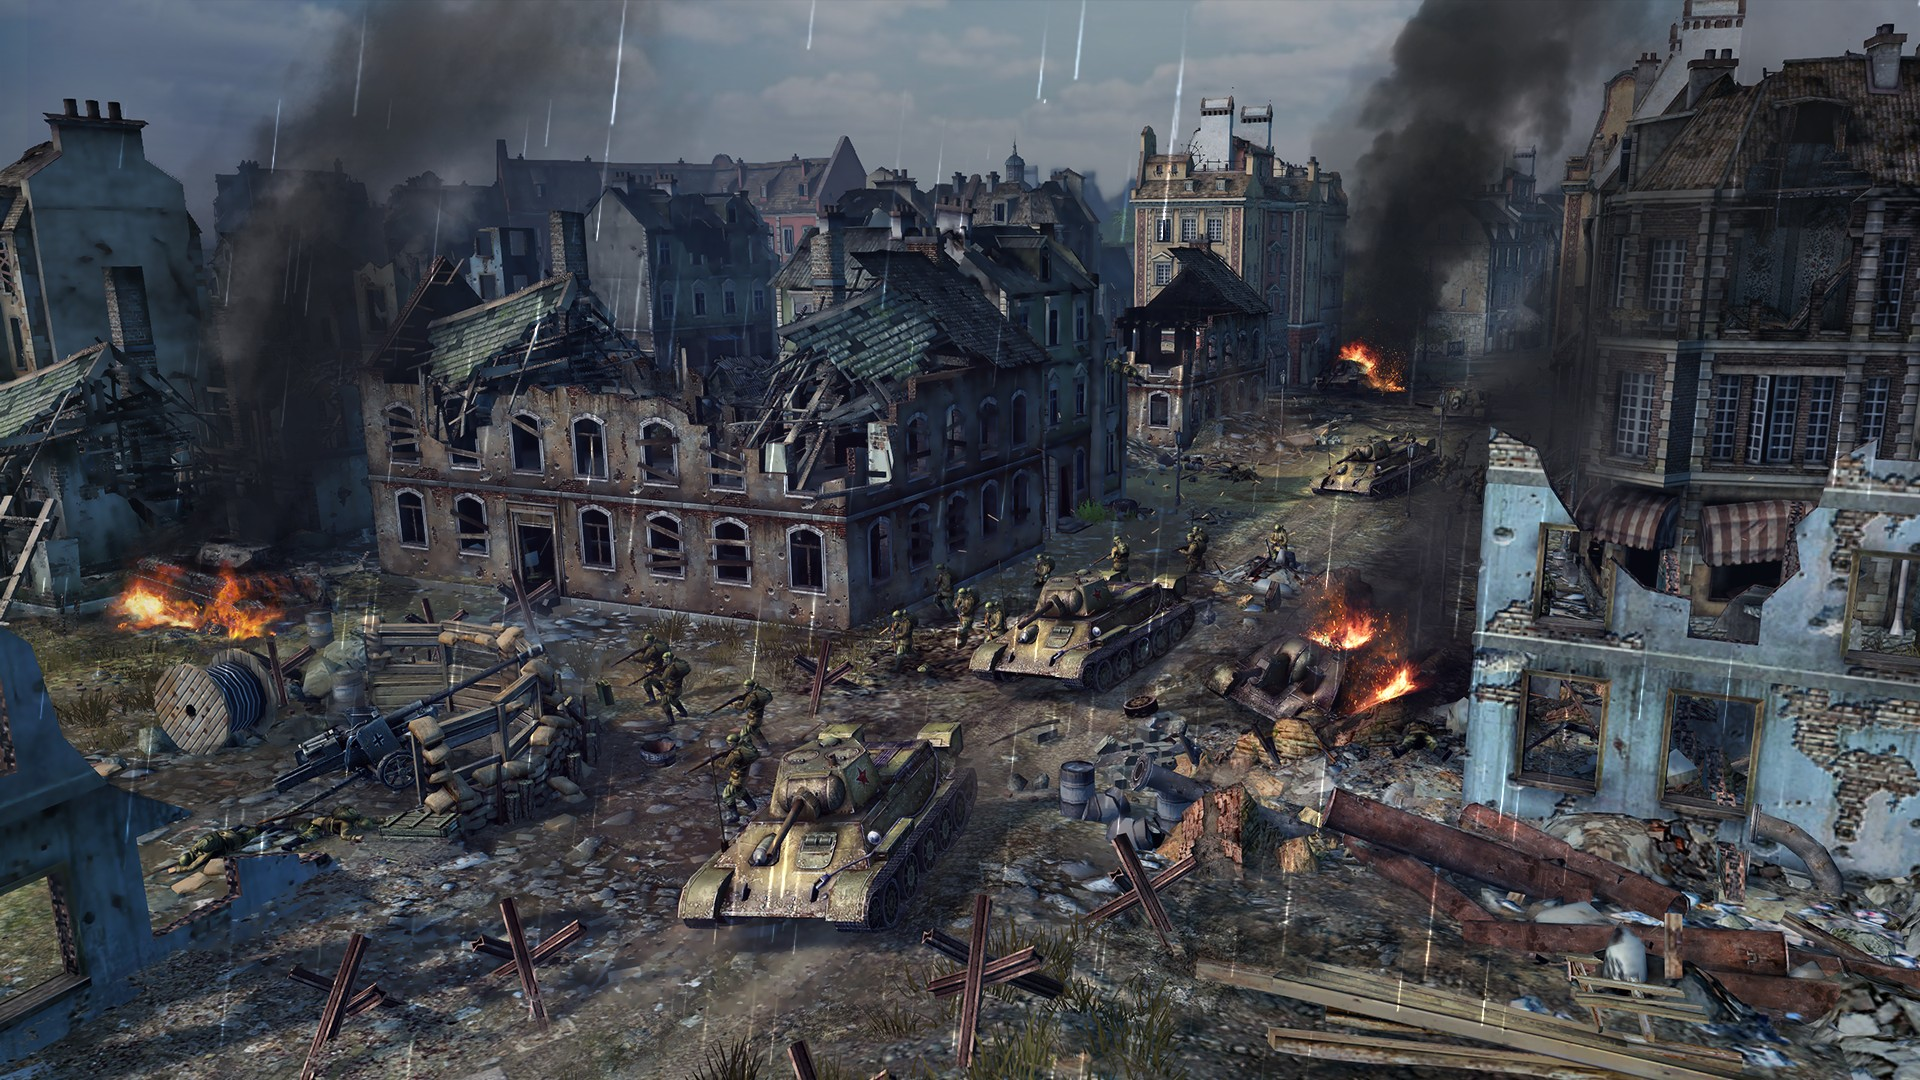 Blitzkrieg-3-Screenshot-13-pc-games.jpg